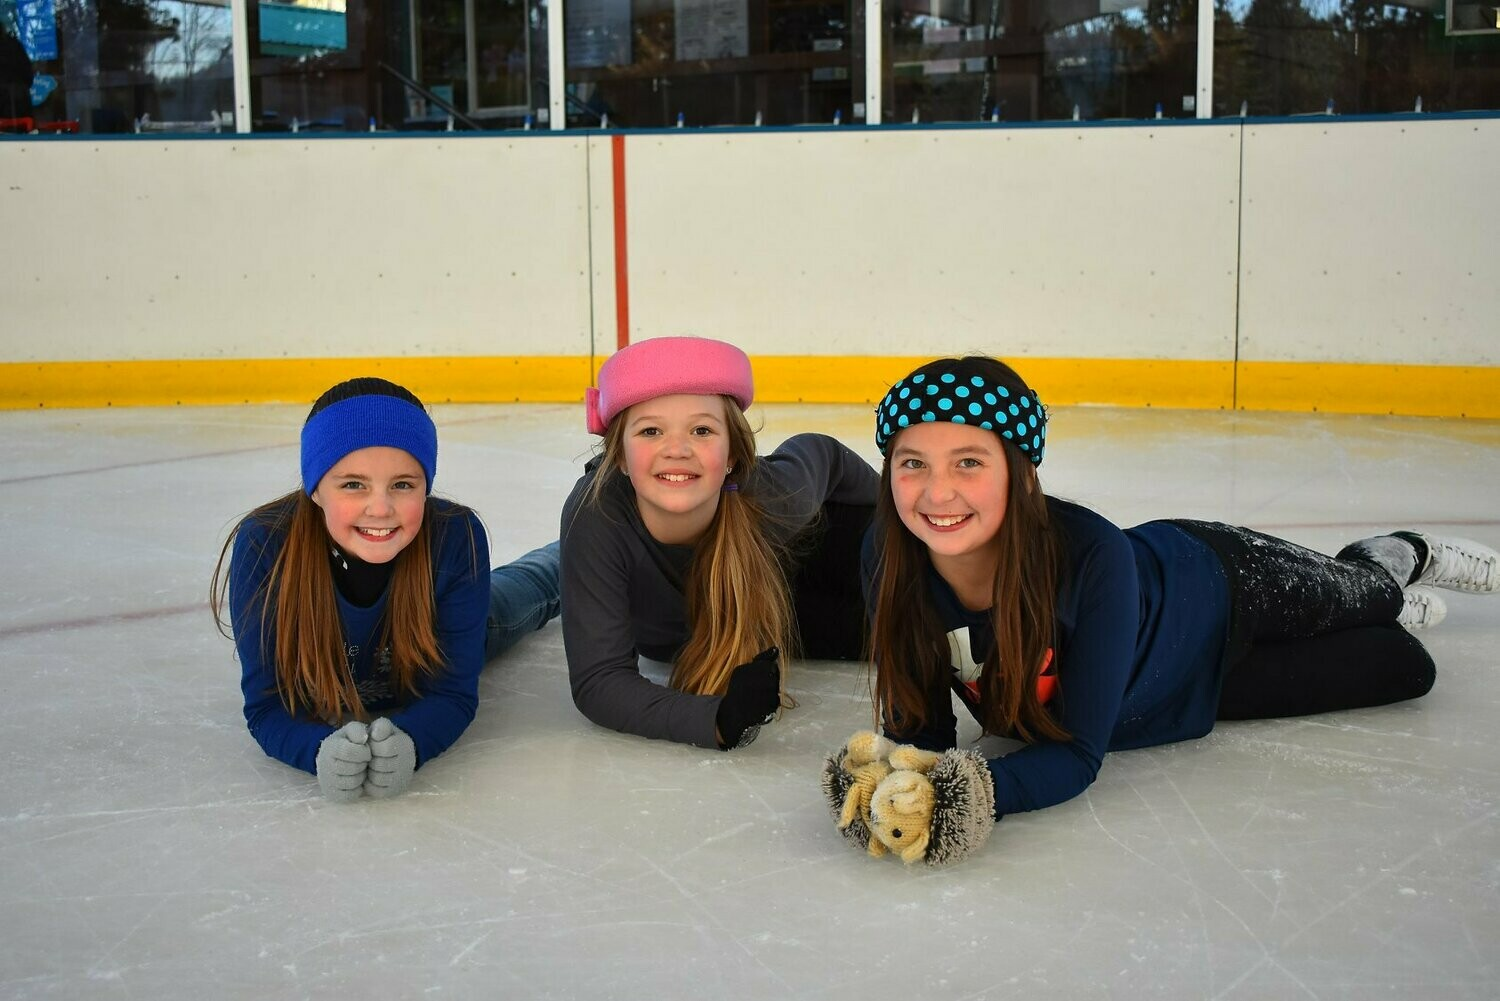 January 15 After School Skate 4:15-5:15pm